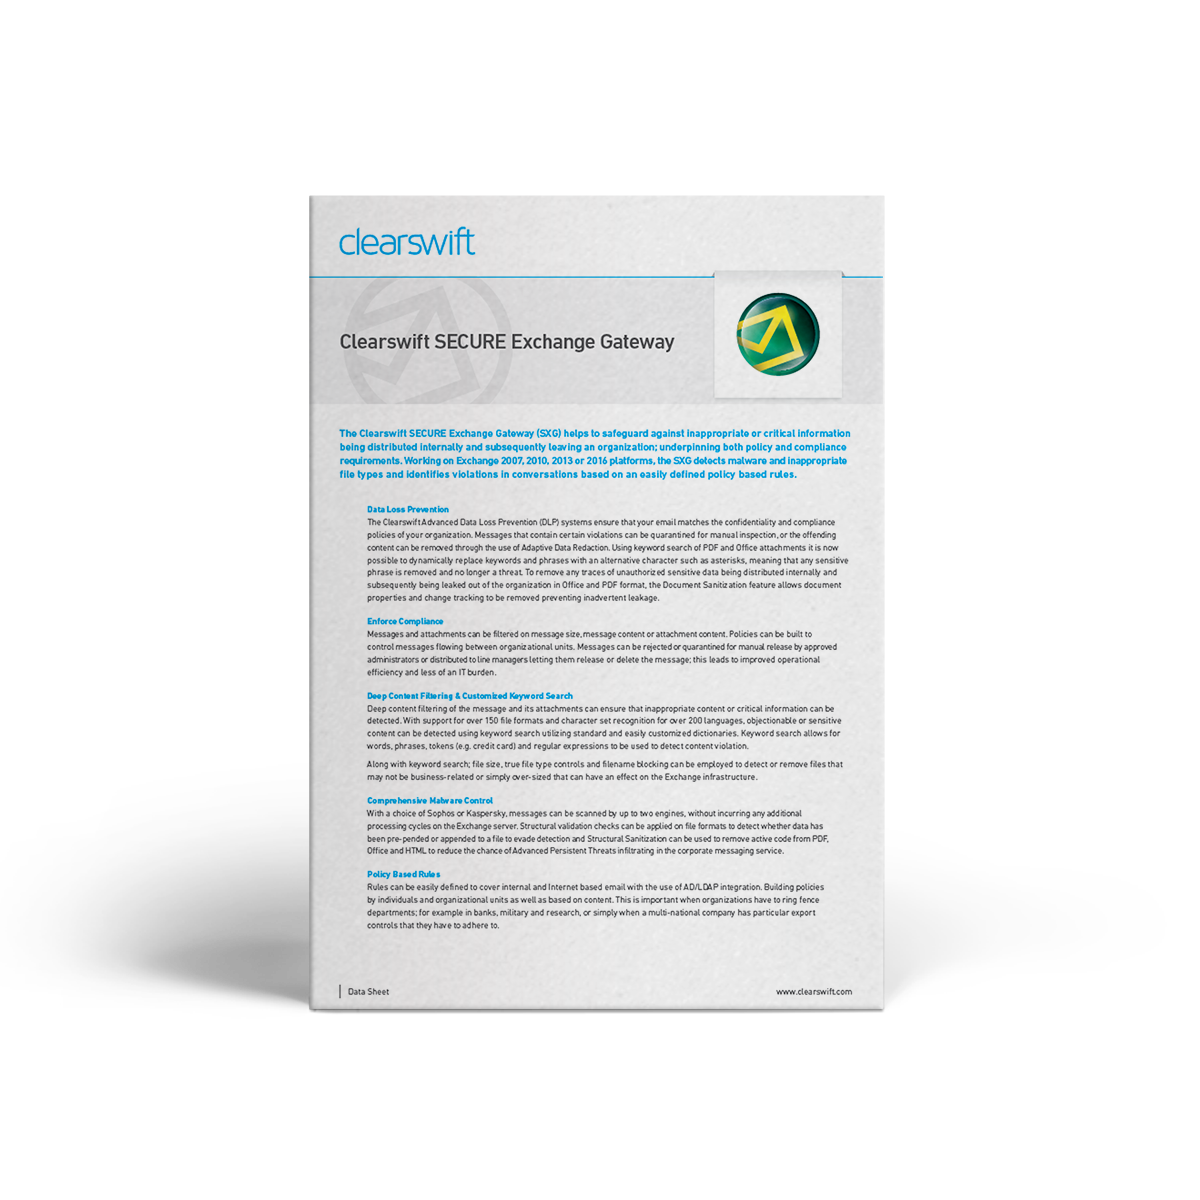 Clearswift SXG datasheet